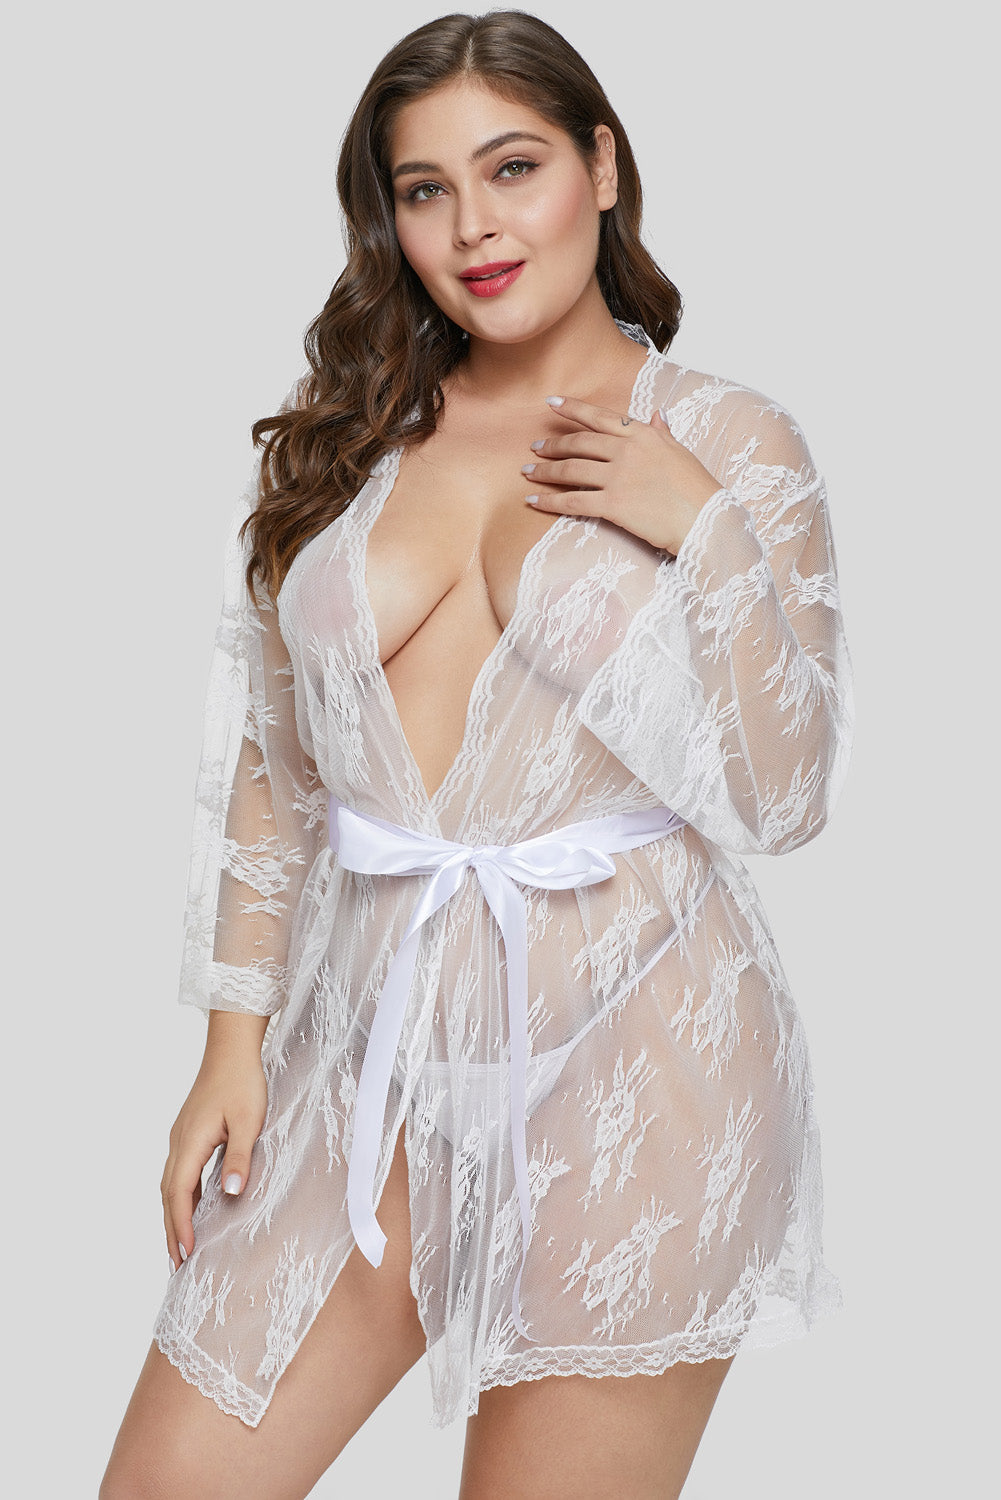 White Plus Size Butterfly Sleeves Lace Robe with Thong